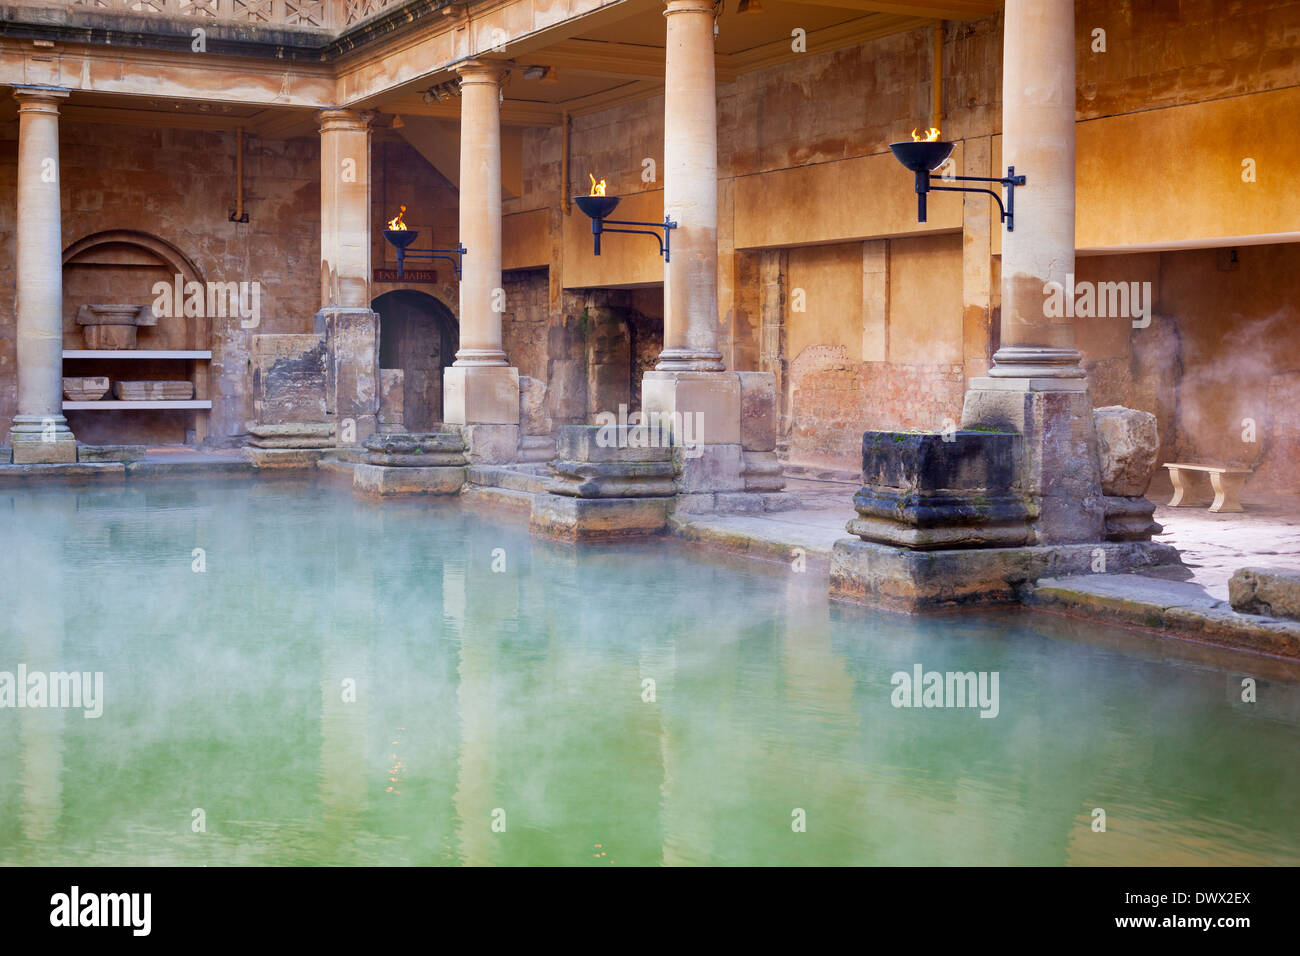 Steam rising off the hot mineral water in the Great Bath, part of the Roman Baths in Bath, UK - Stock Image